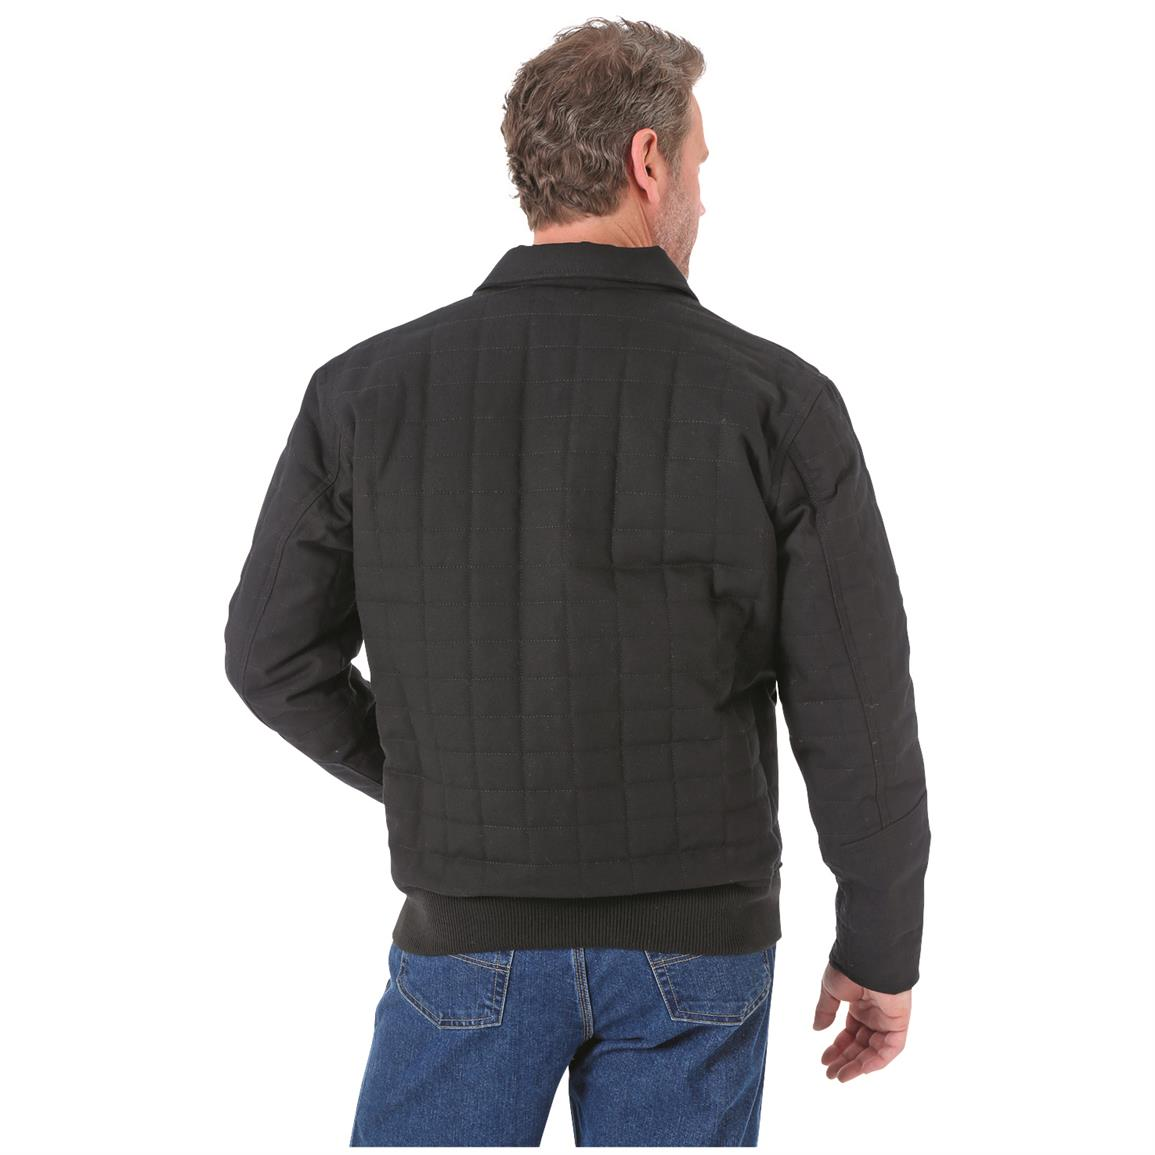 Wrangler RIGGS Workwear Men's Tradesman Jacket, Rear View